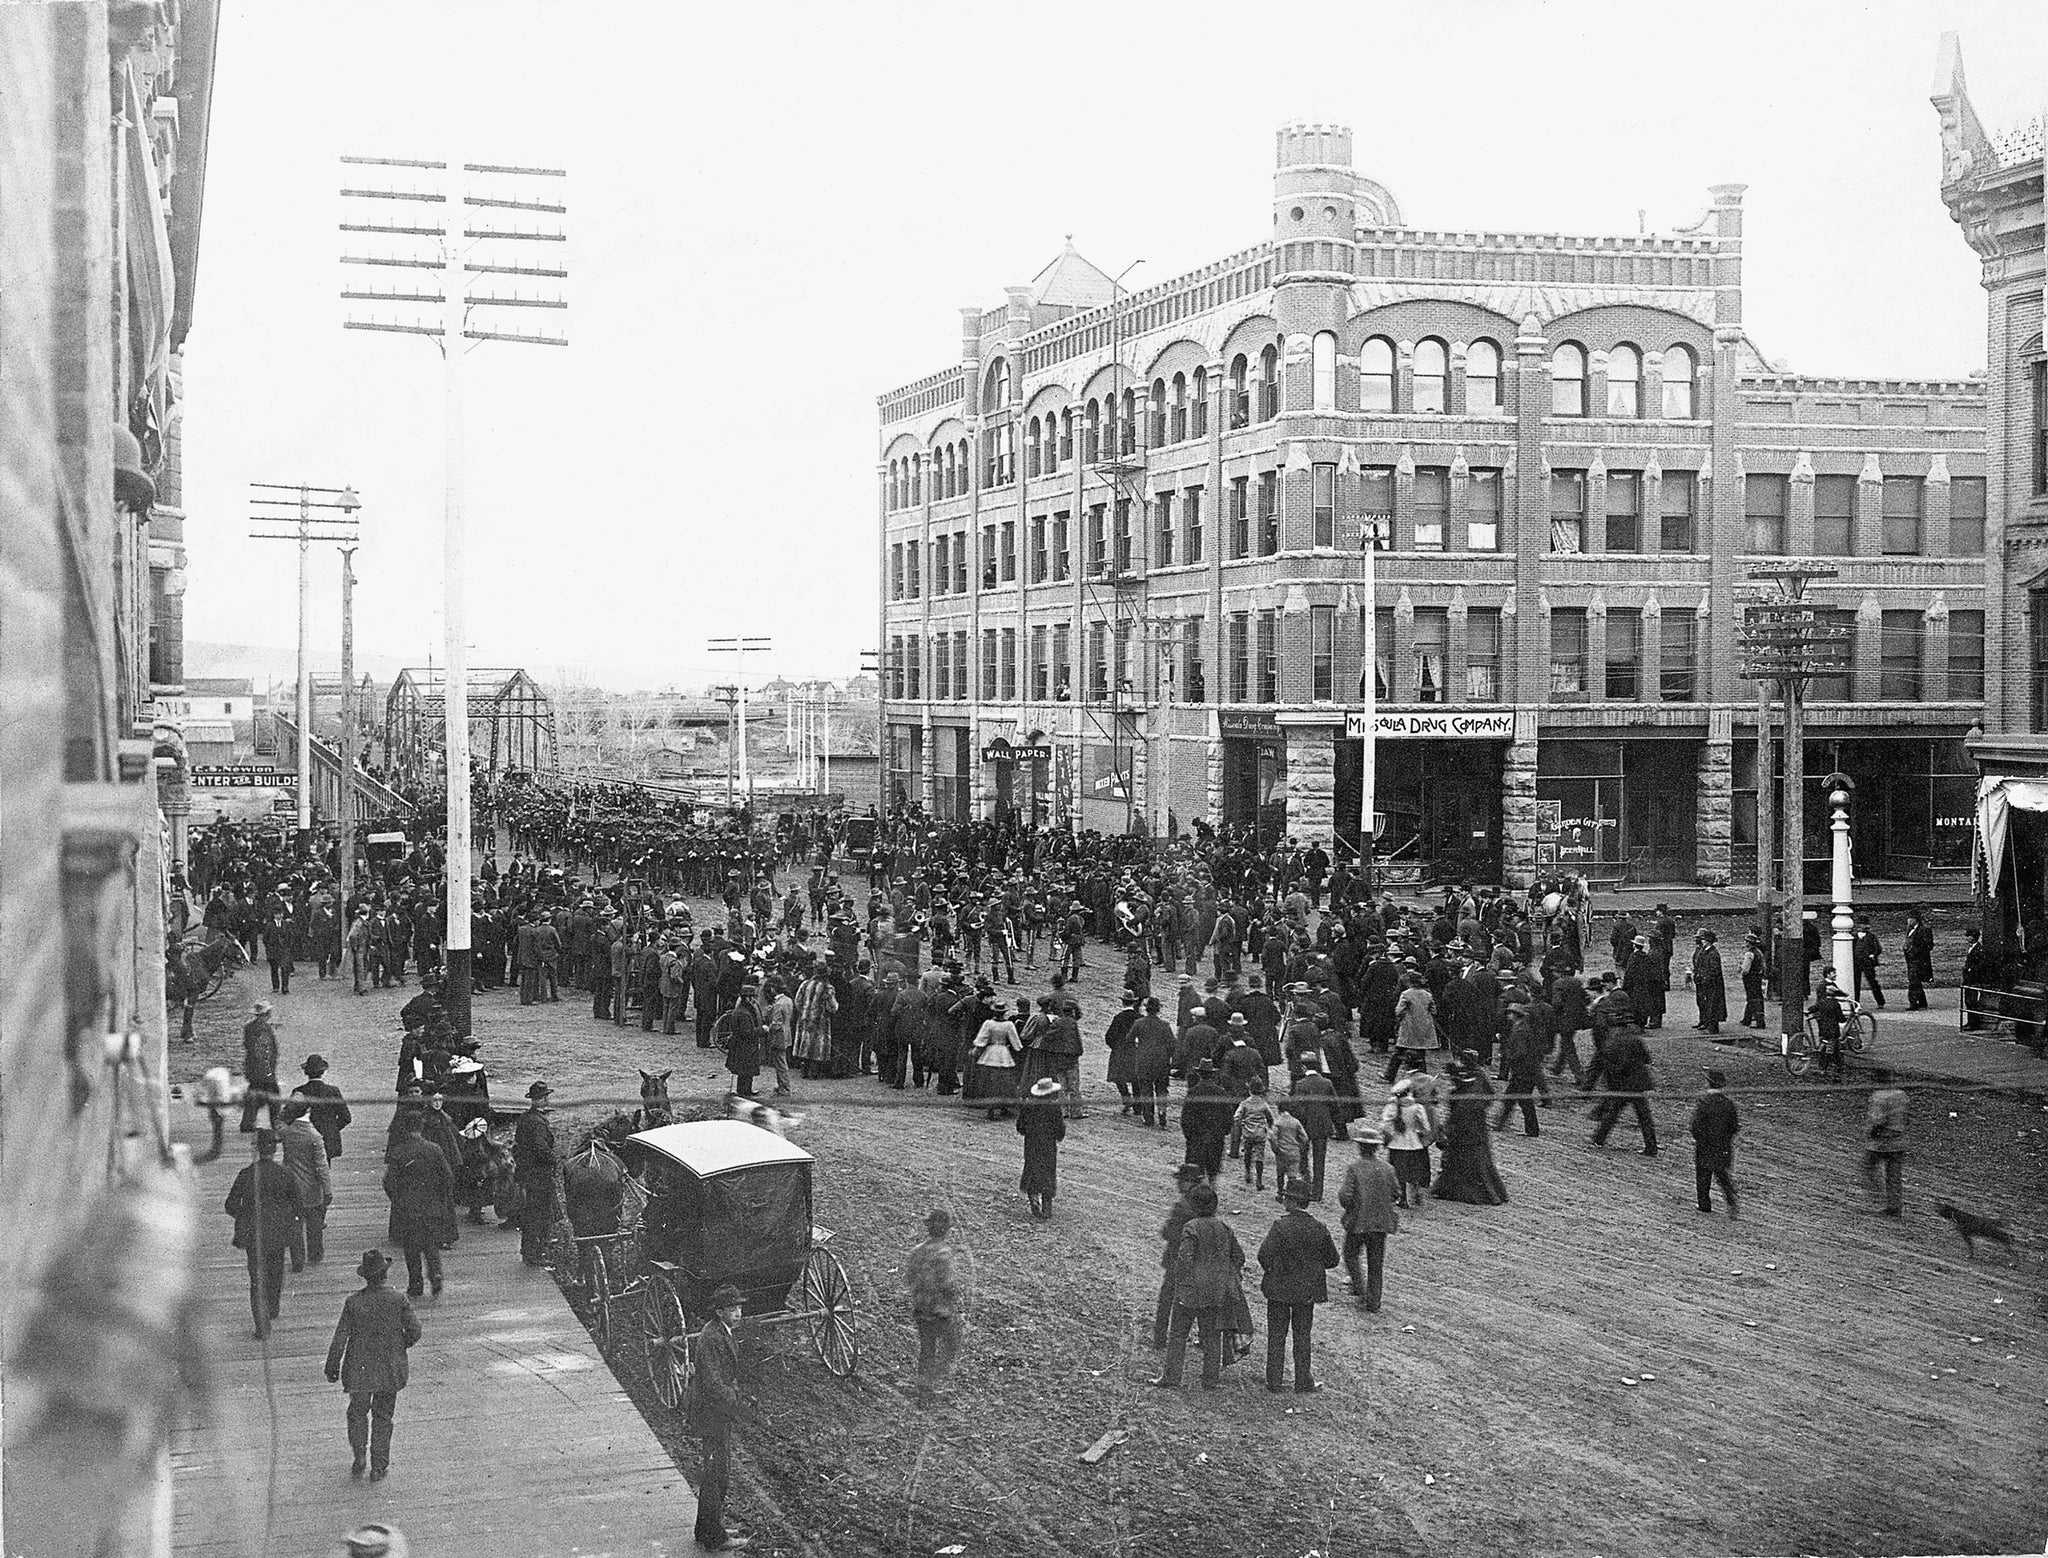 Crowd watching the departure of the United States Army's 25th Infantry across Higgins Bridge in Missoula, April 10, 1898. Headed to Tampa, Florida, they were the first regiment to be active for the Spanish-American War. The Hammond Building is visible in the background. -- Image 76-0200, Courtesy Mansfield Library Archives, University of Montana